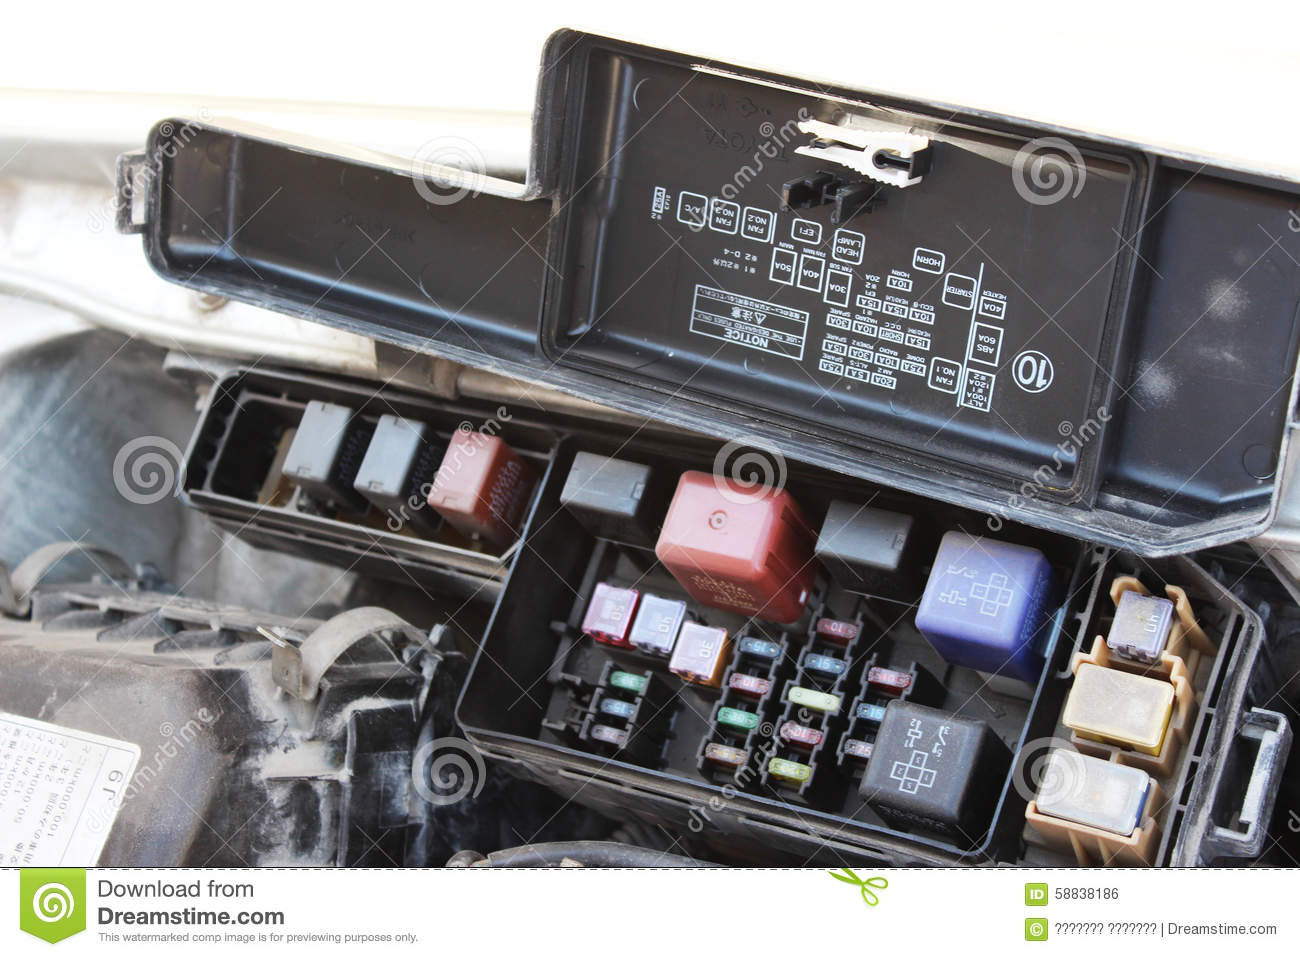 fuse box under hood car 58838186 under hood fuse box cartridge fuse box \u2022 wiring diagrams j trailblazer fuse box melted at panicattacktreatment.co